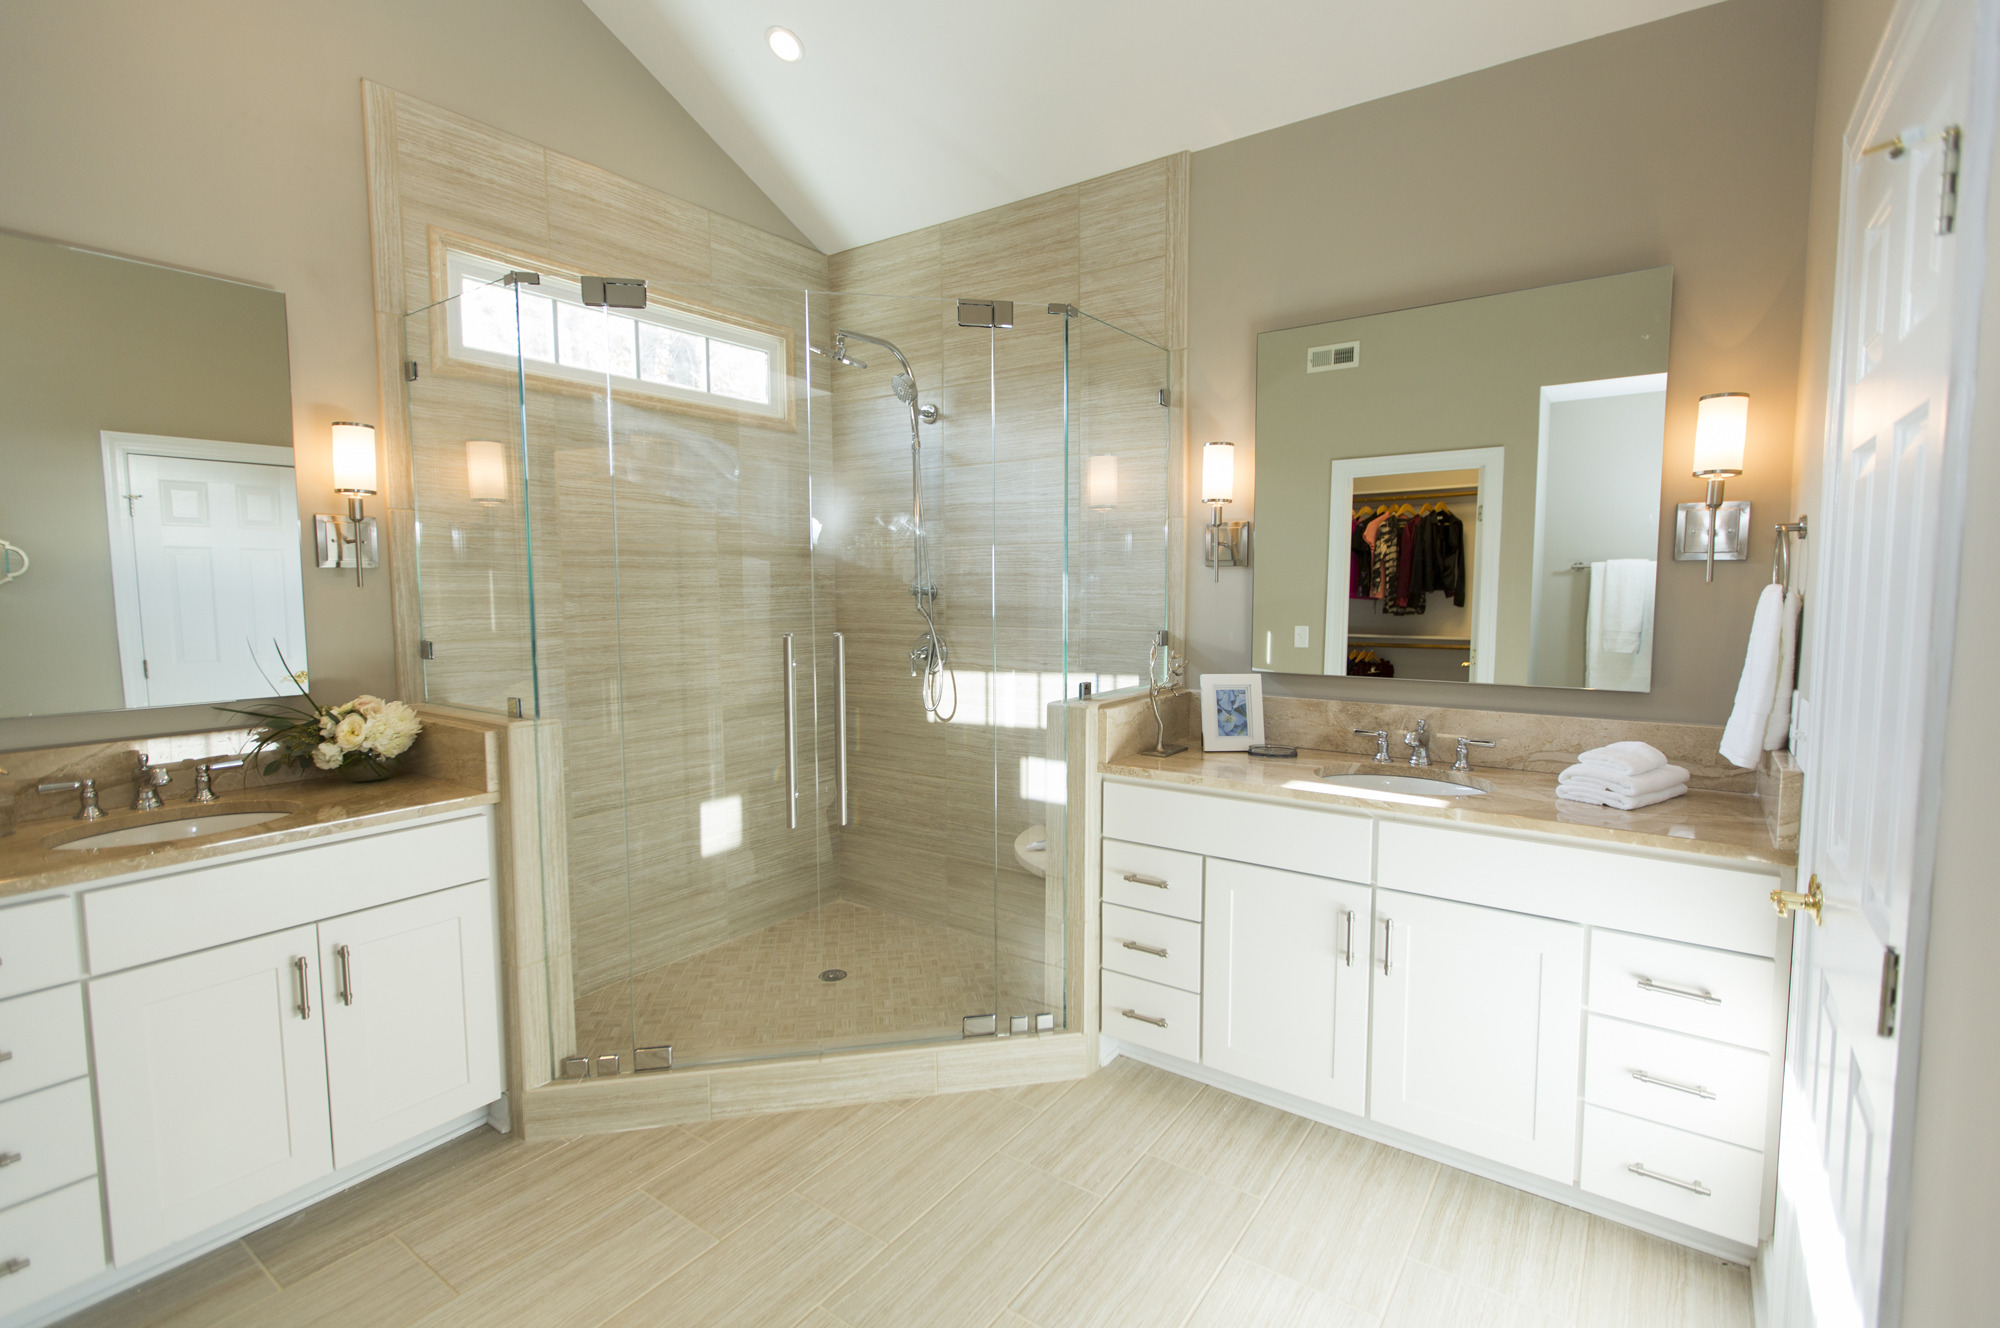 Bathroom Remodeling Mia Shower Doors - Bathroom cabinets raleigh nc